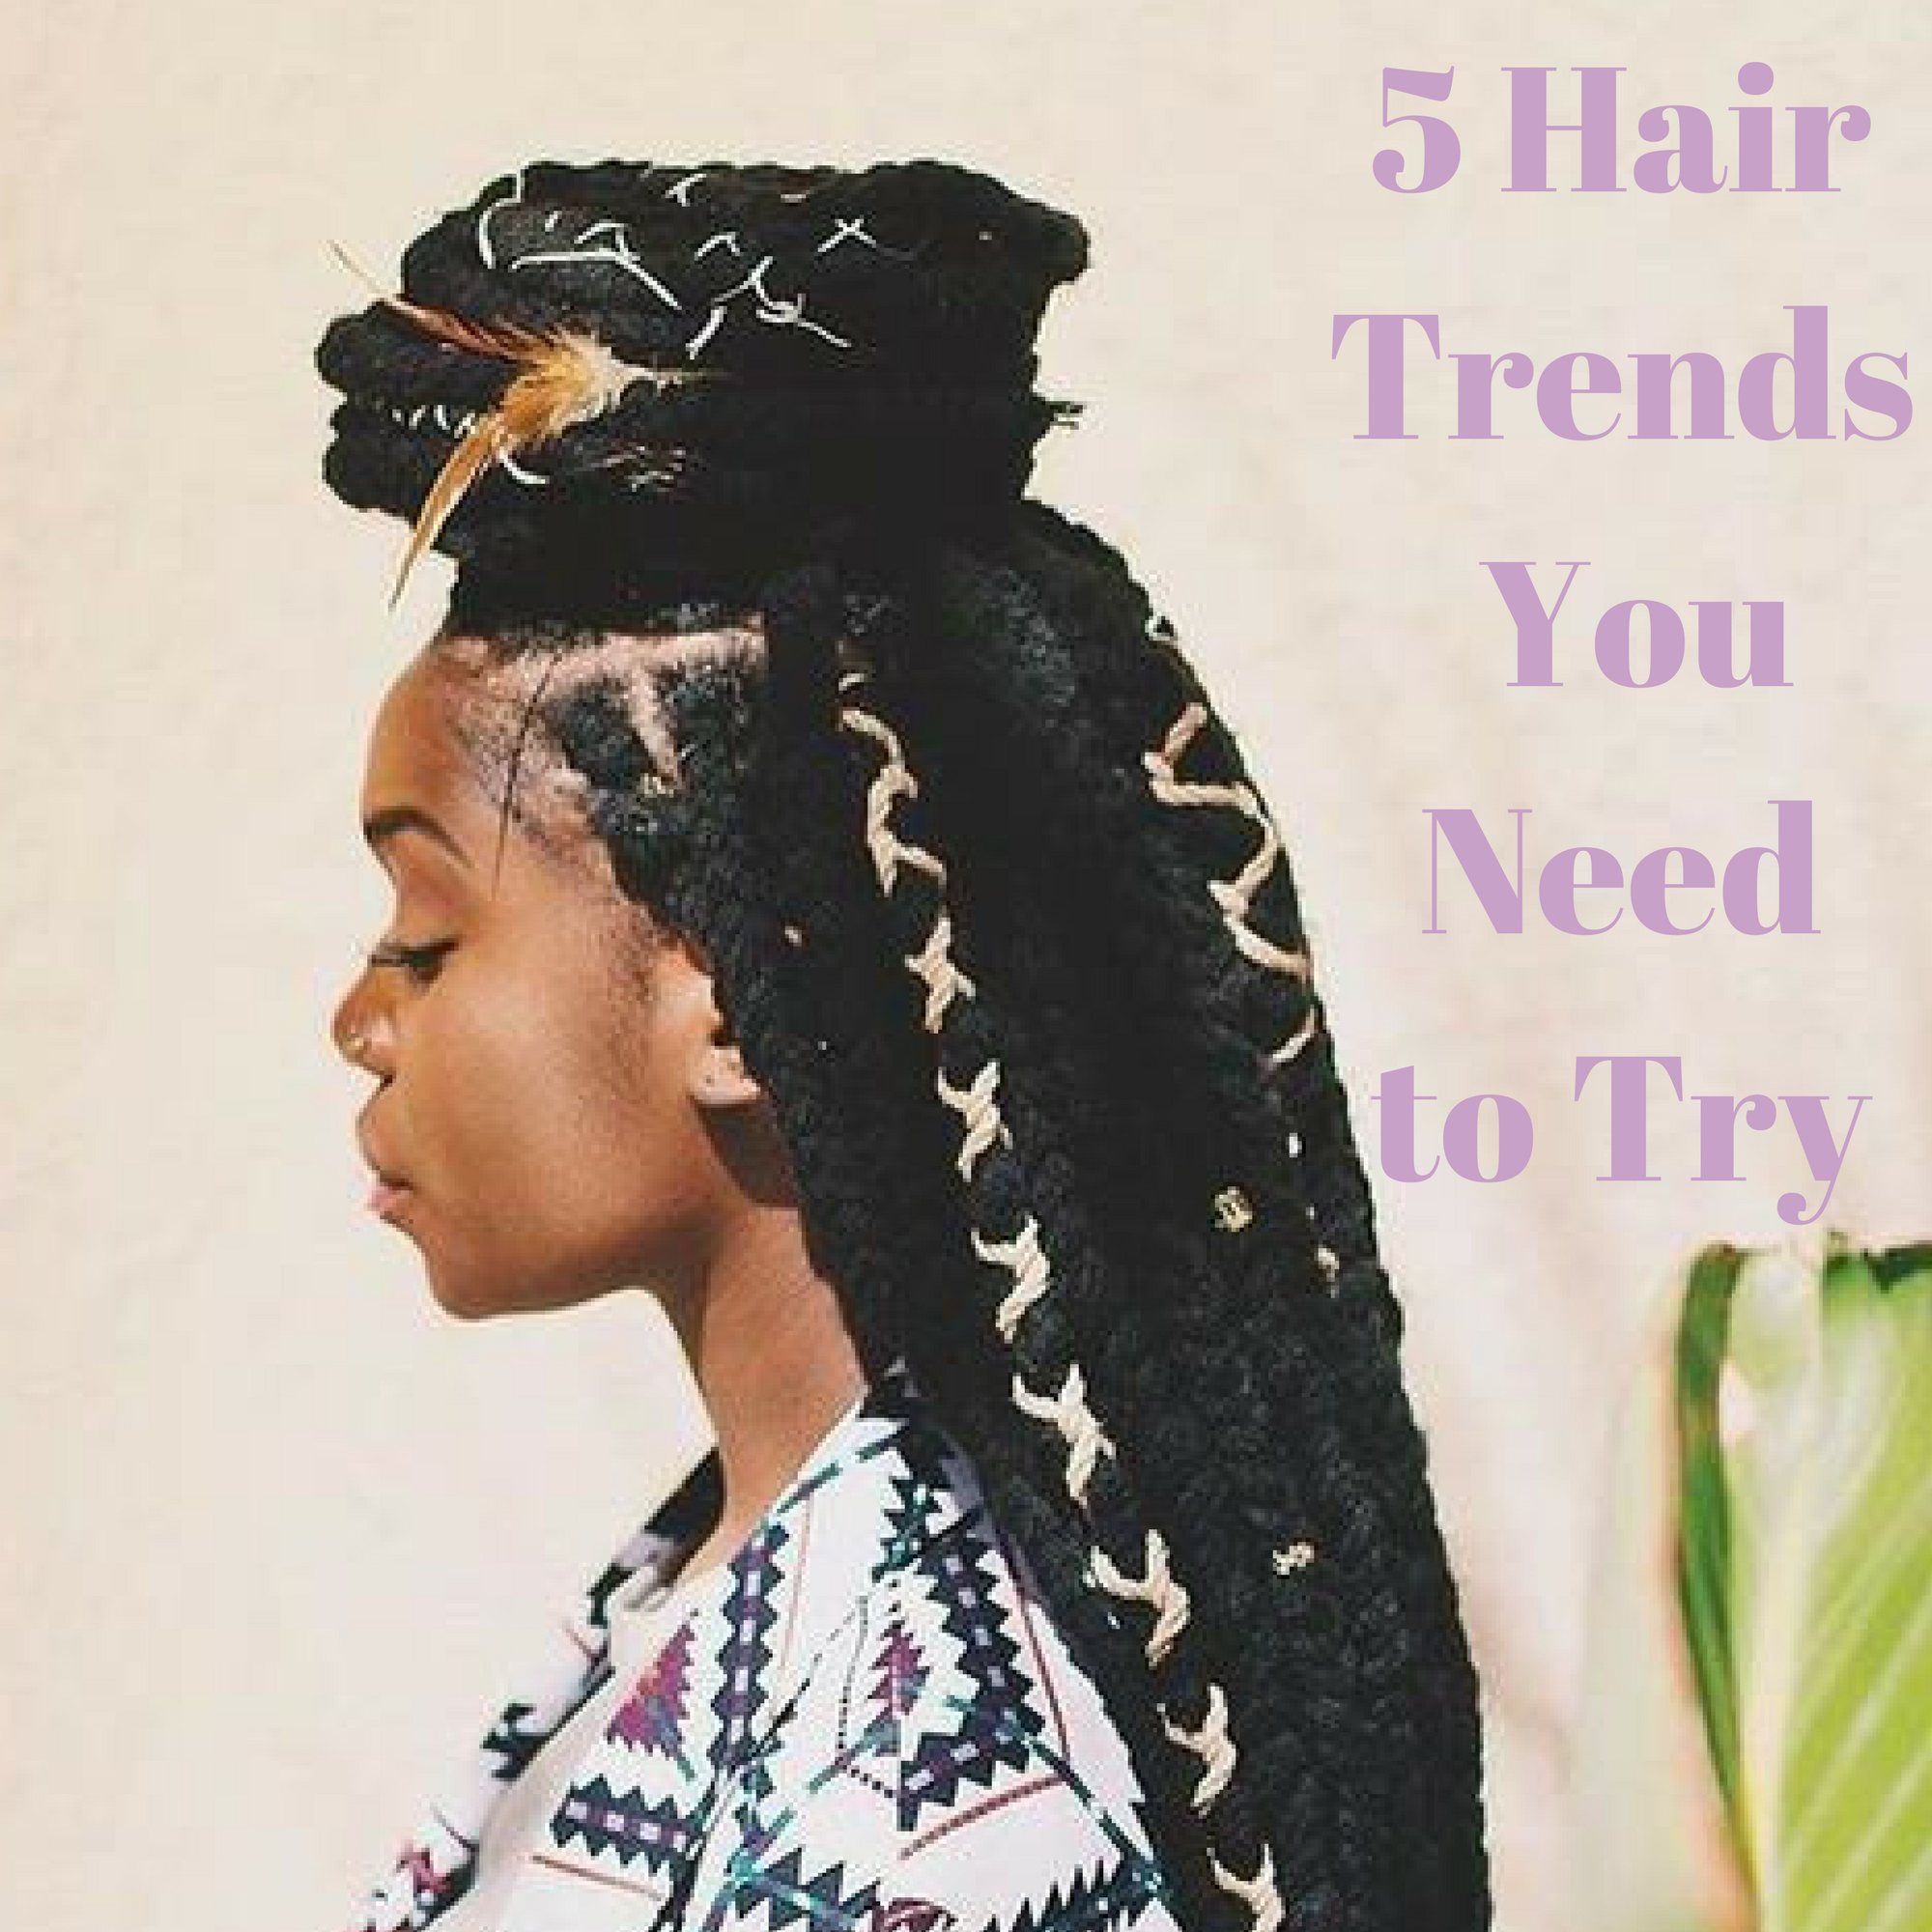 5 HAIR TRENDS YOU NEED TO TRY!